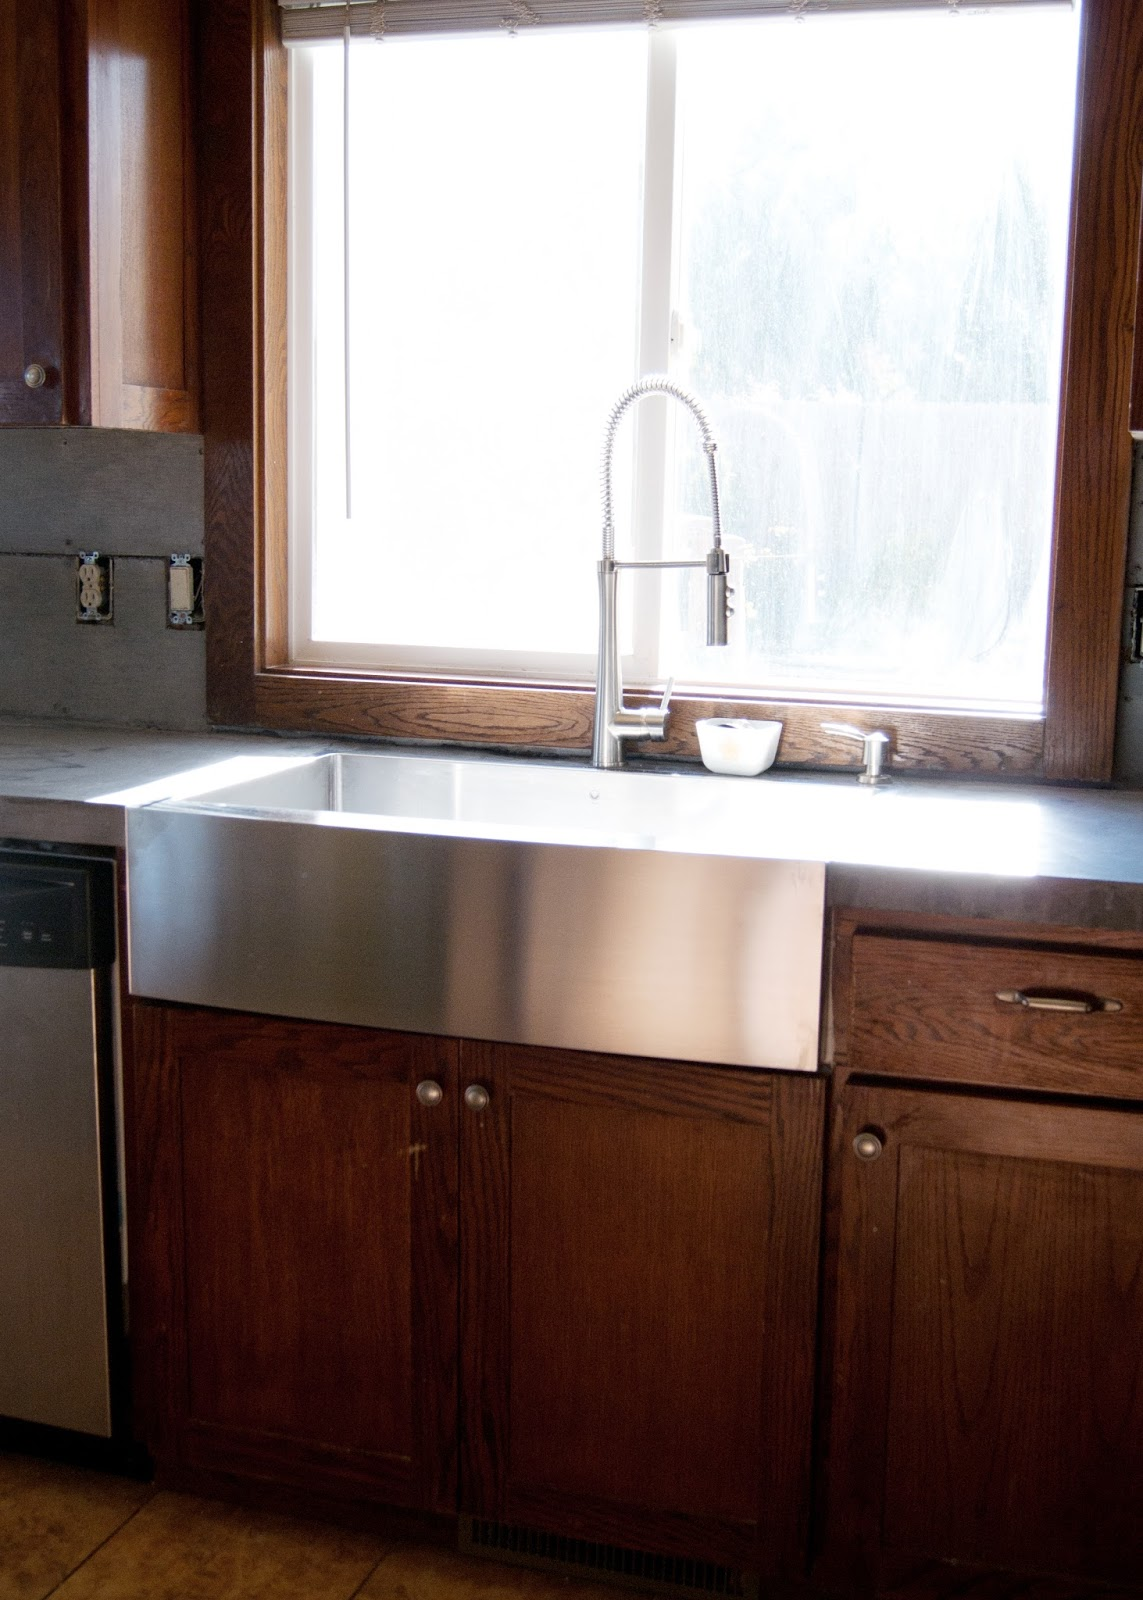 new stainless steel apron front sink apron front kitchen sink Apron Front sink installed flush with concrete counters